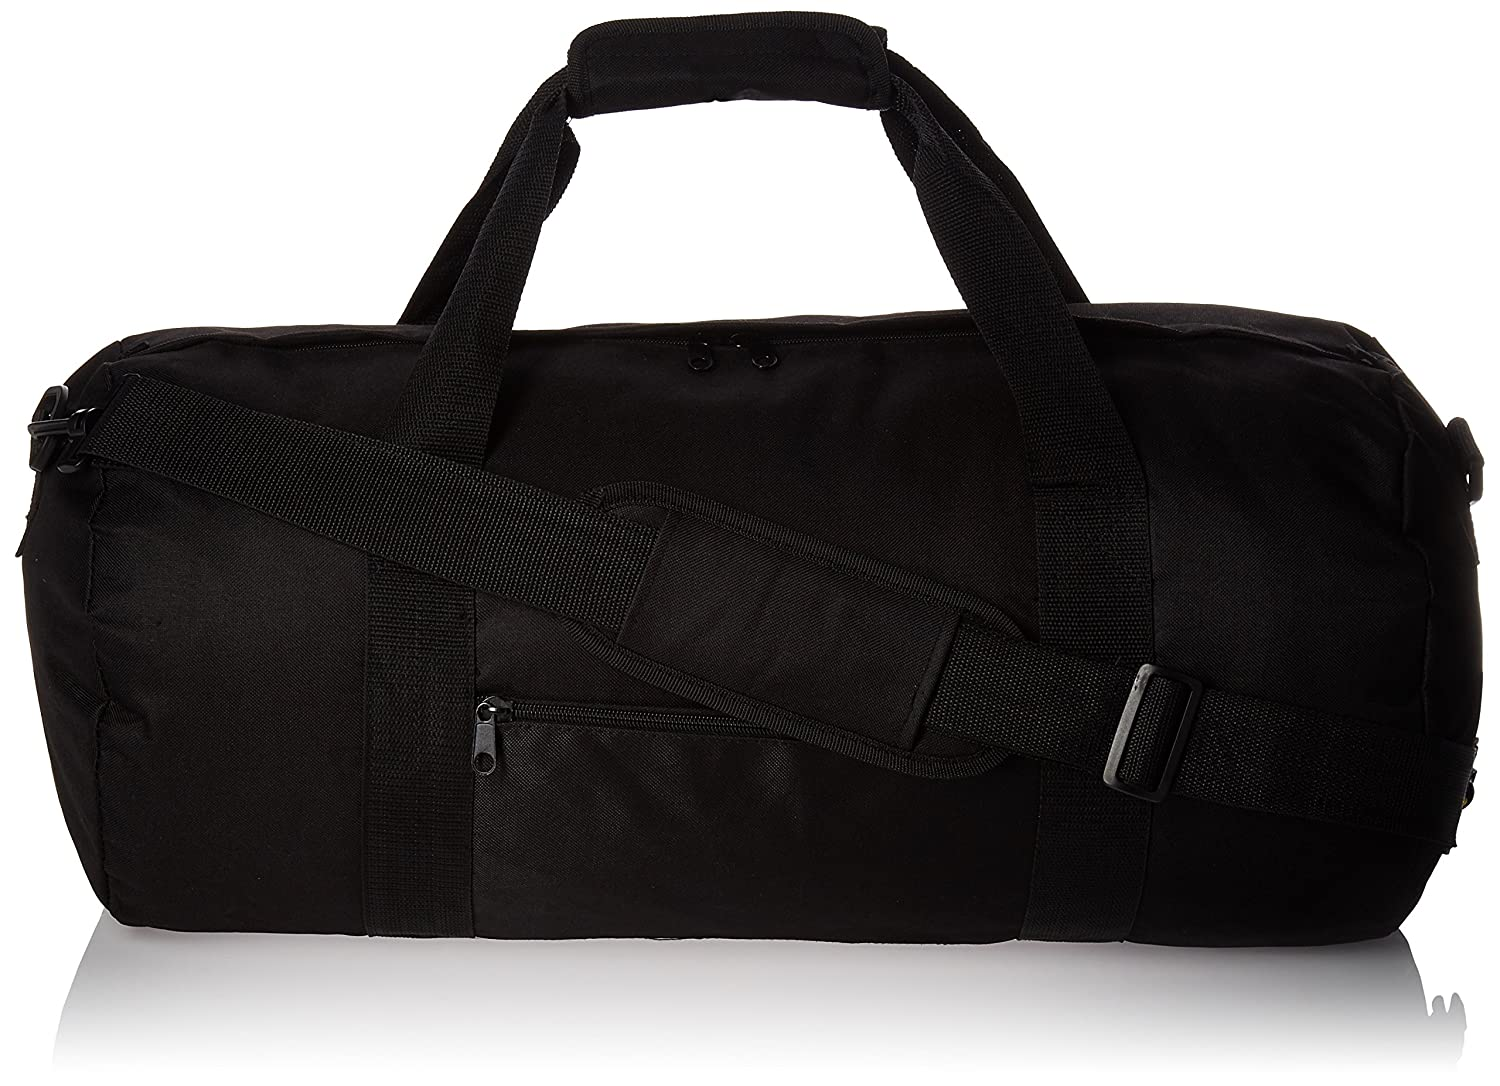 World Famous Sports Fleet Series Duffel Bag